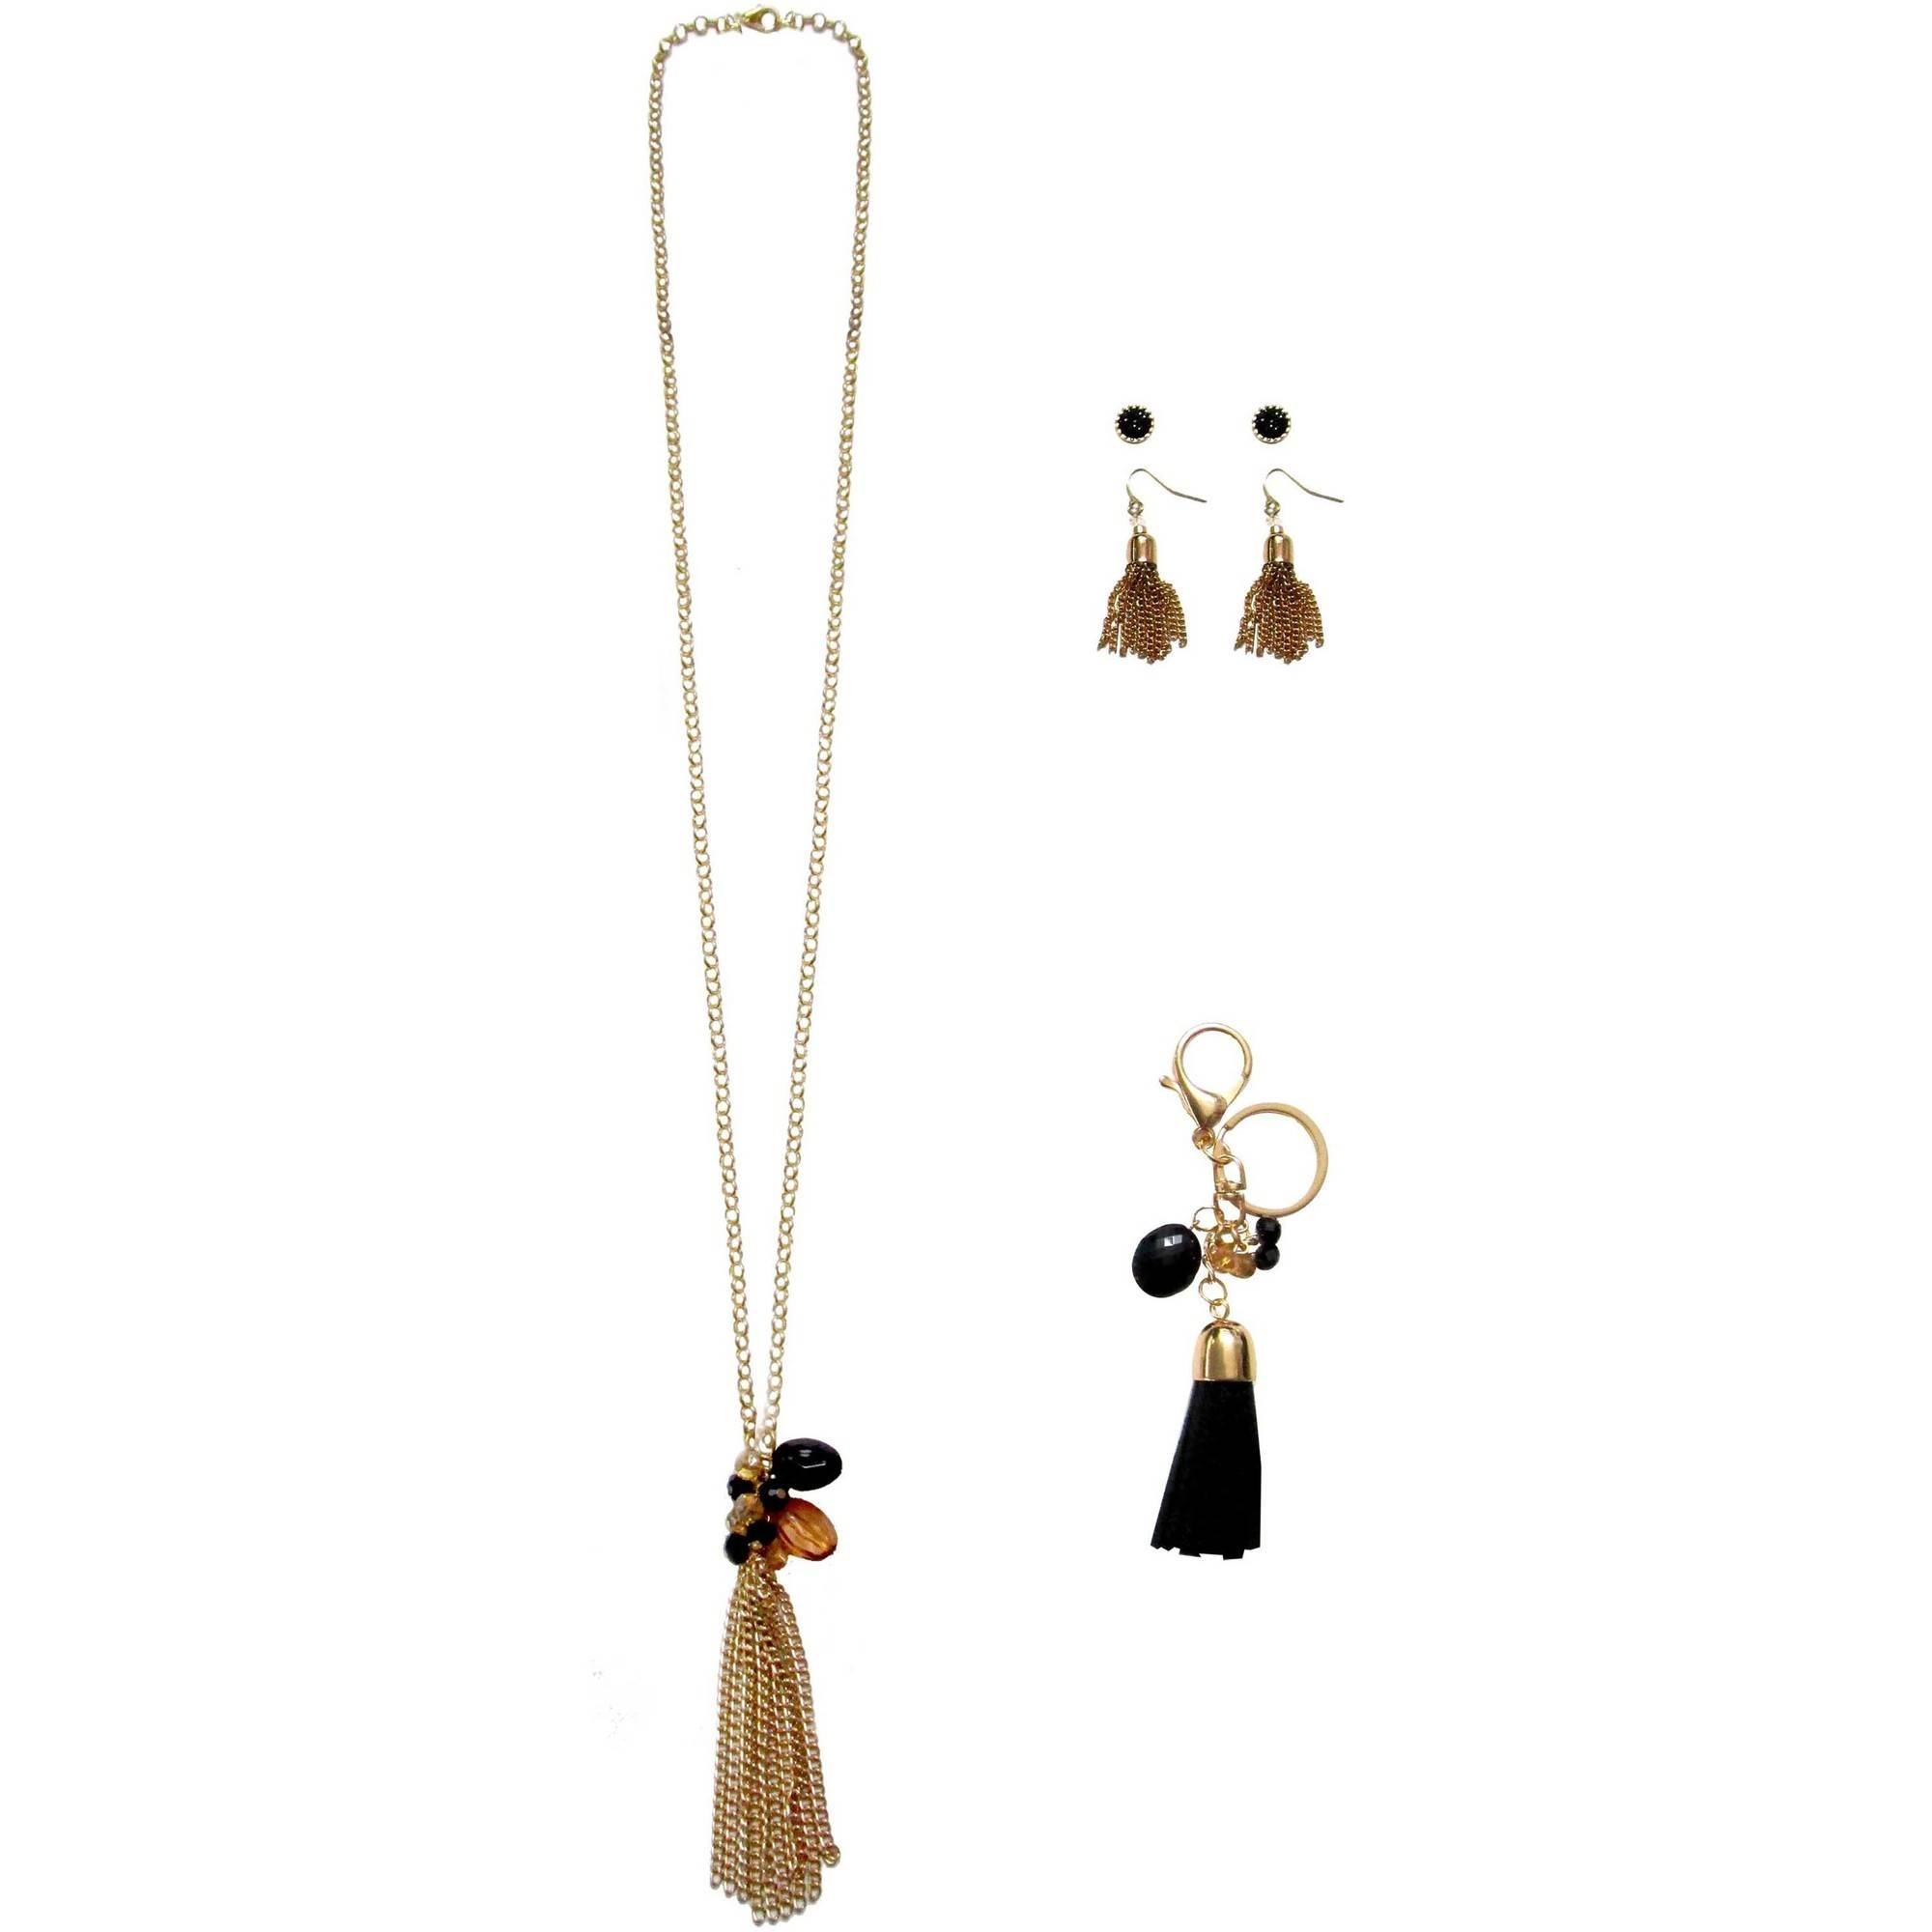 Gold-Tone Tassel Necklace, Earrings and Tassel Keychain Gift Set, 3-Piece